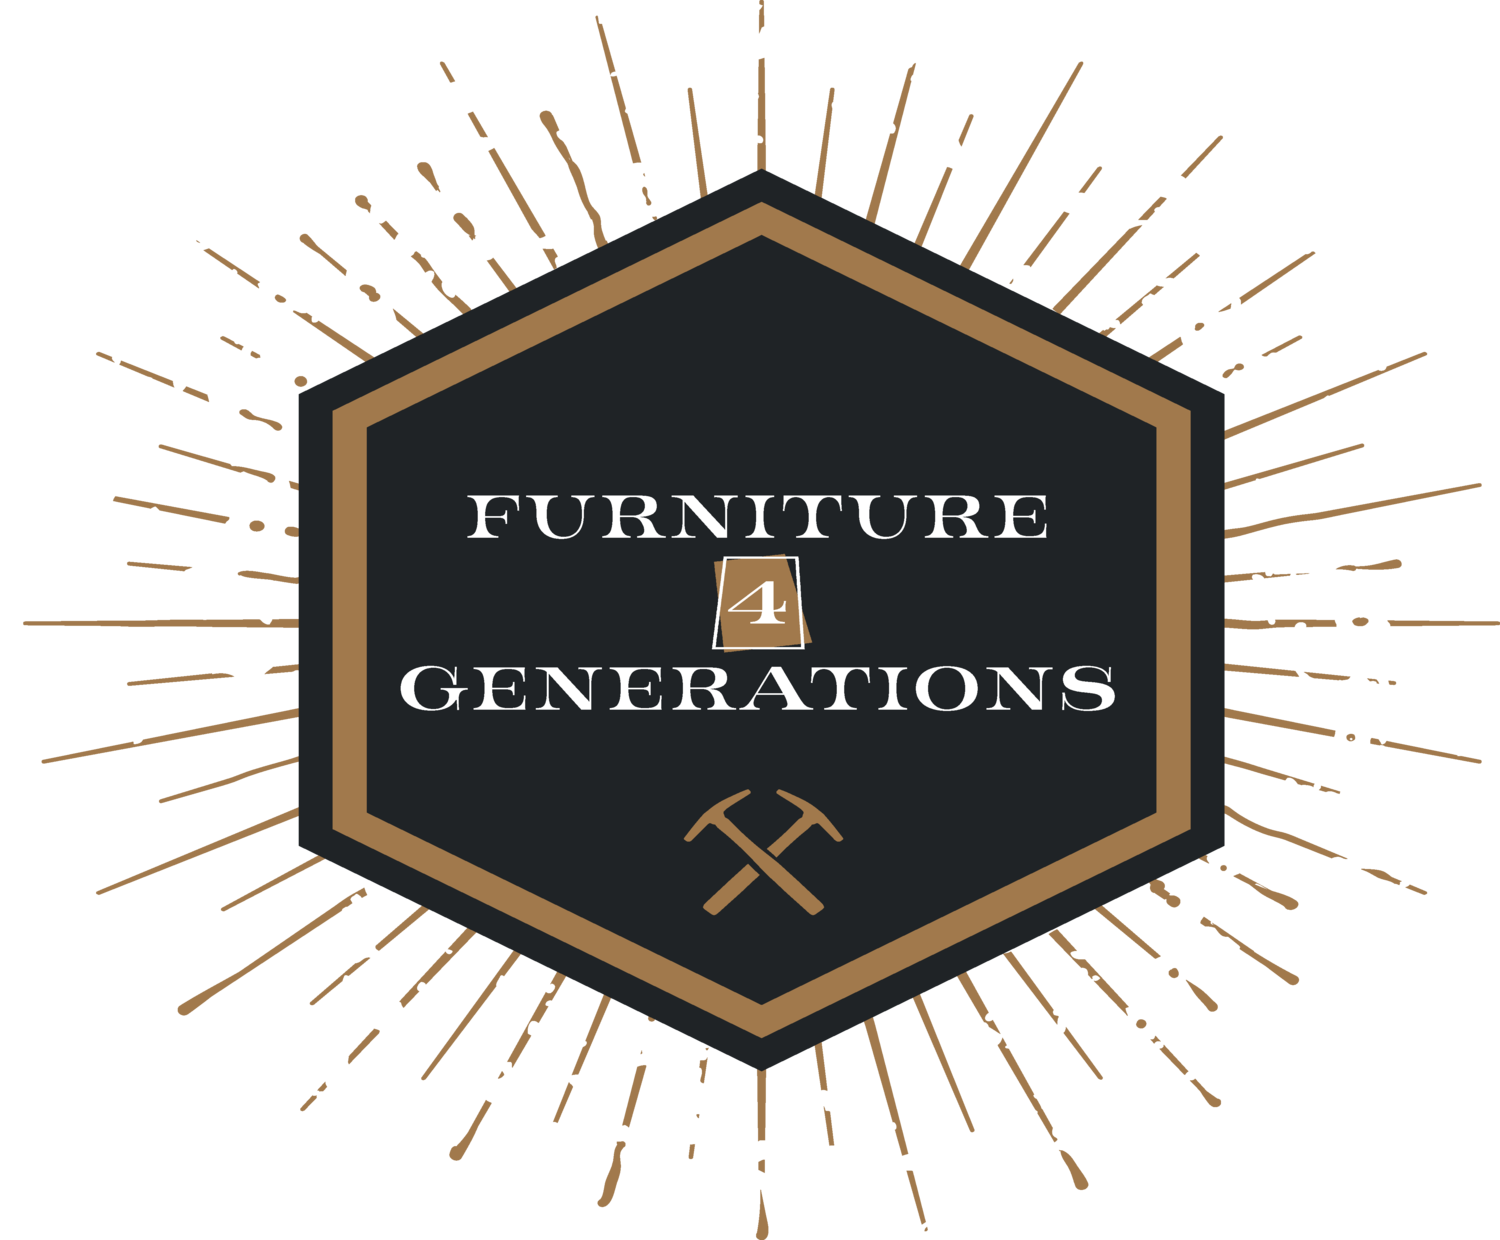 Furniture 4 Generations